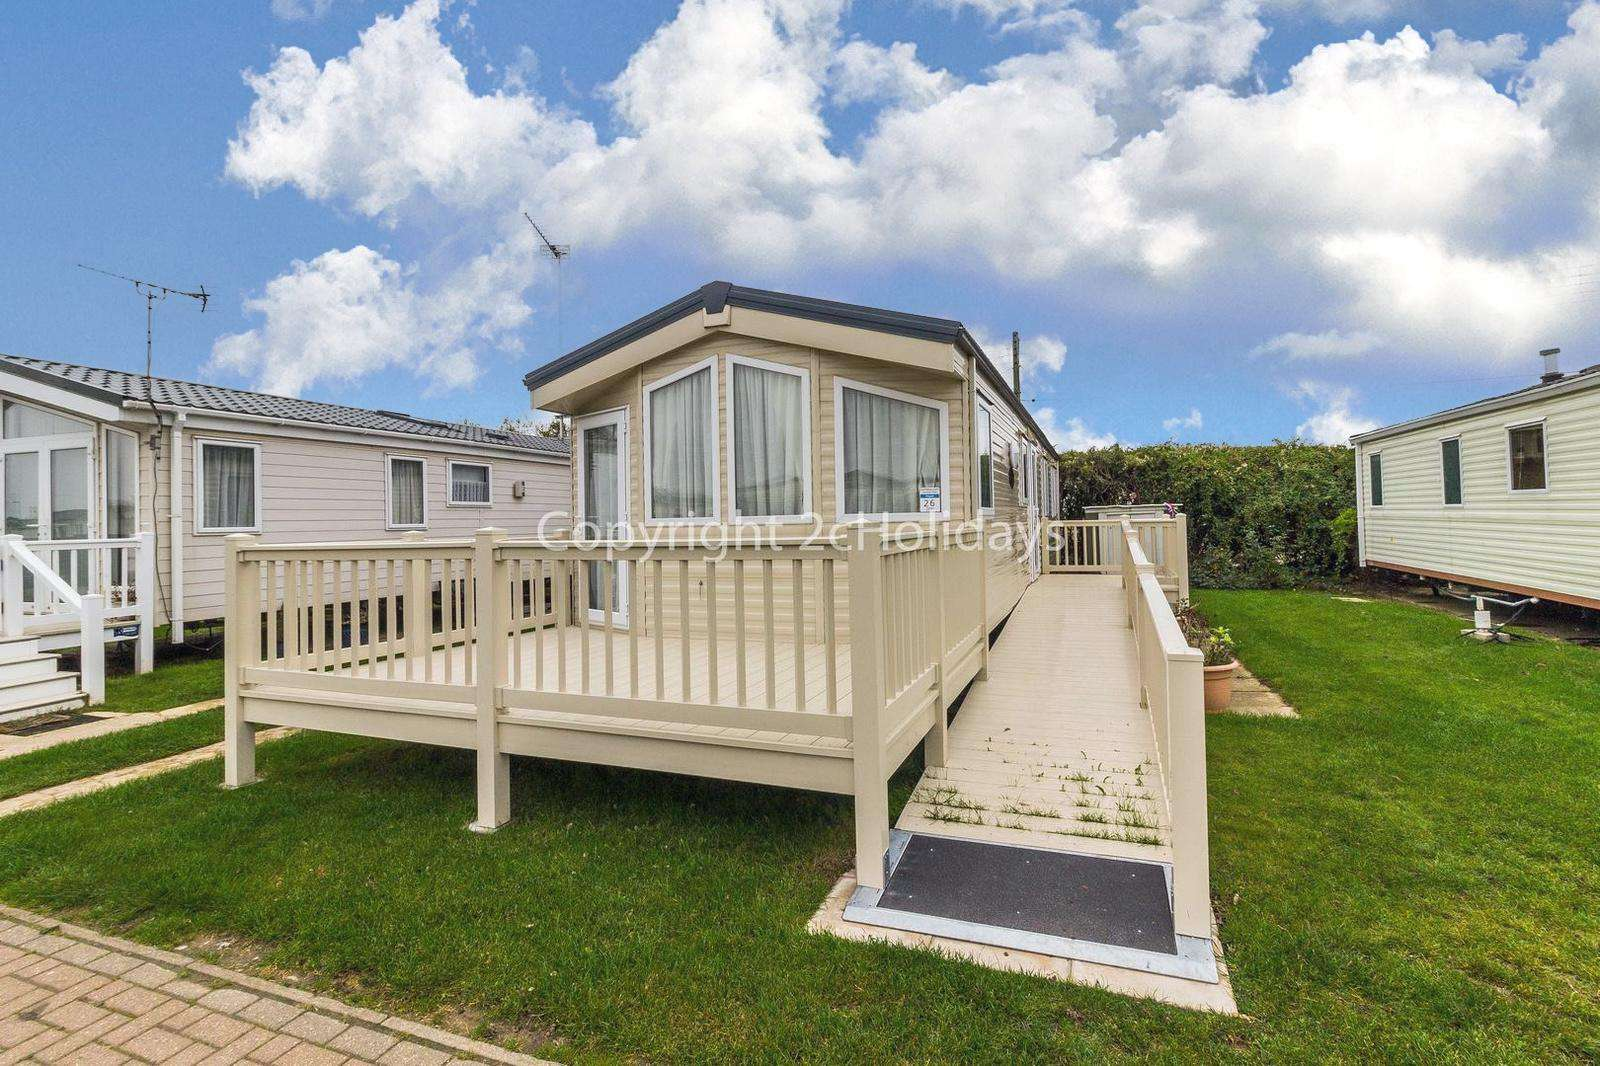 8 berth accommodation with decking at California Cliffs Holiday Park